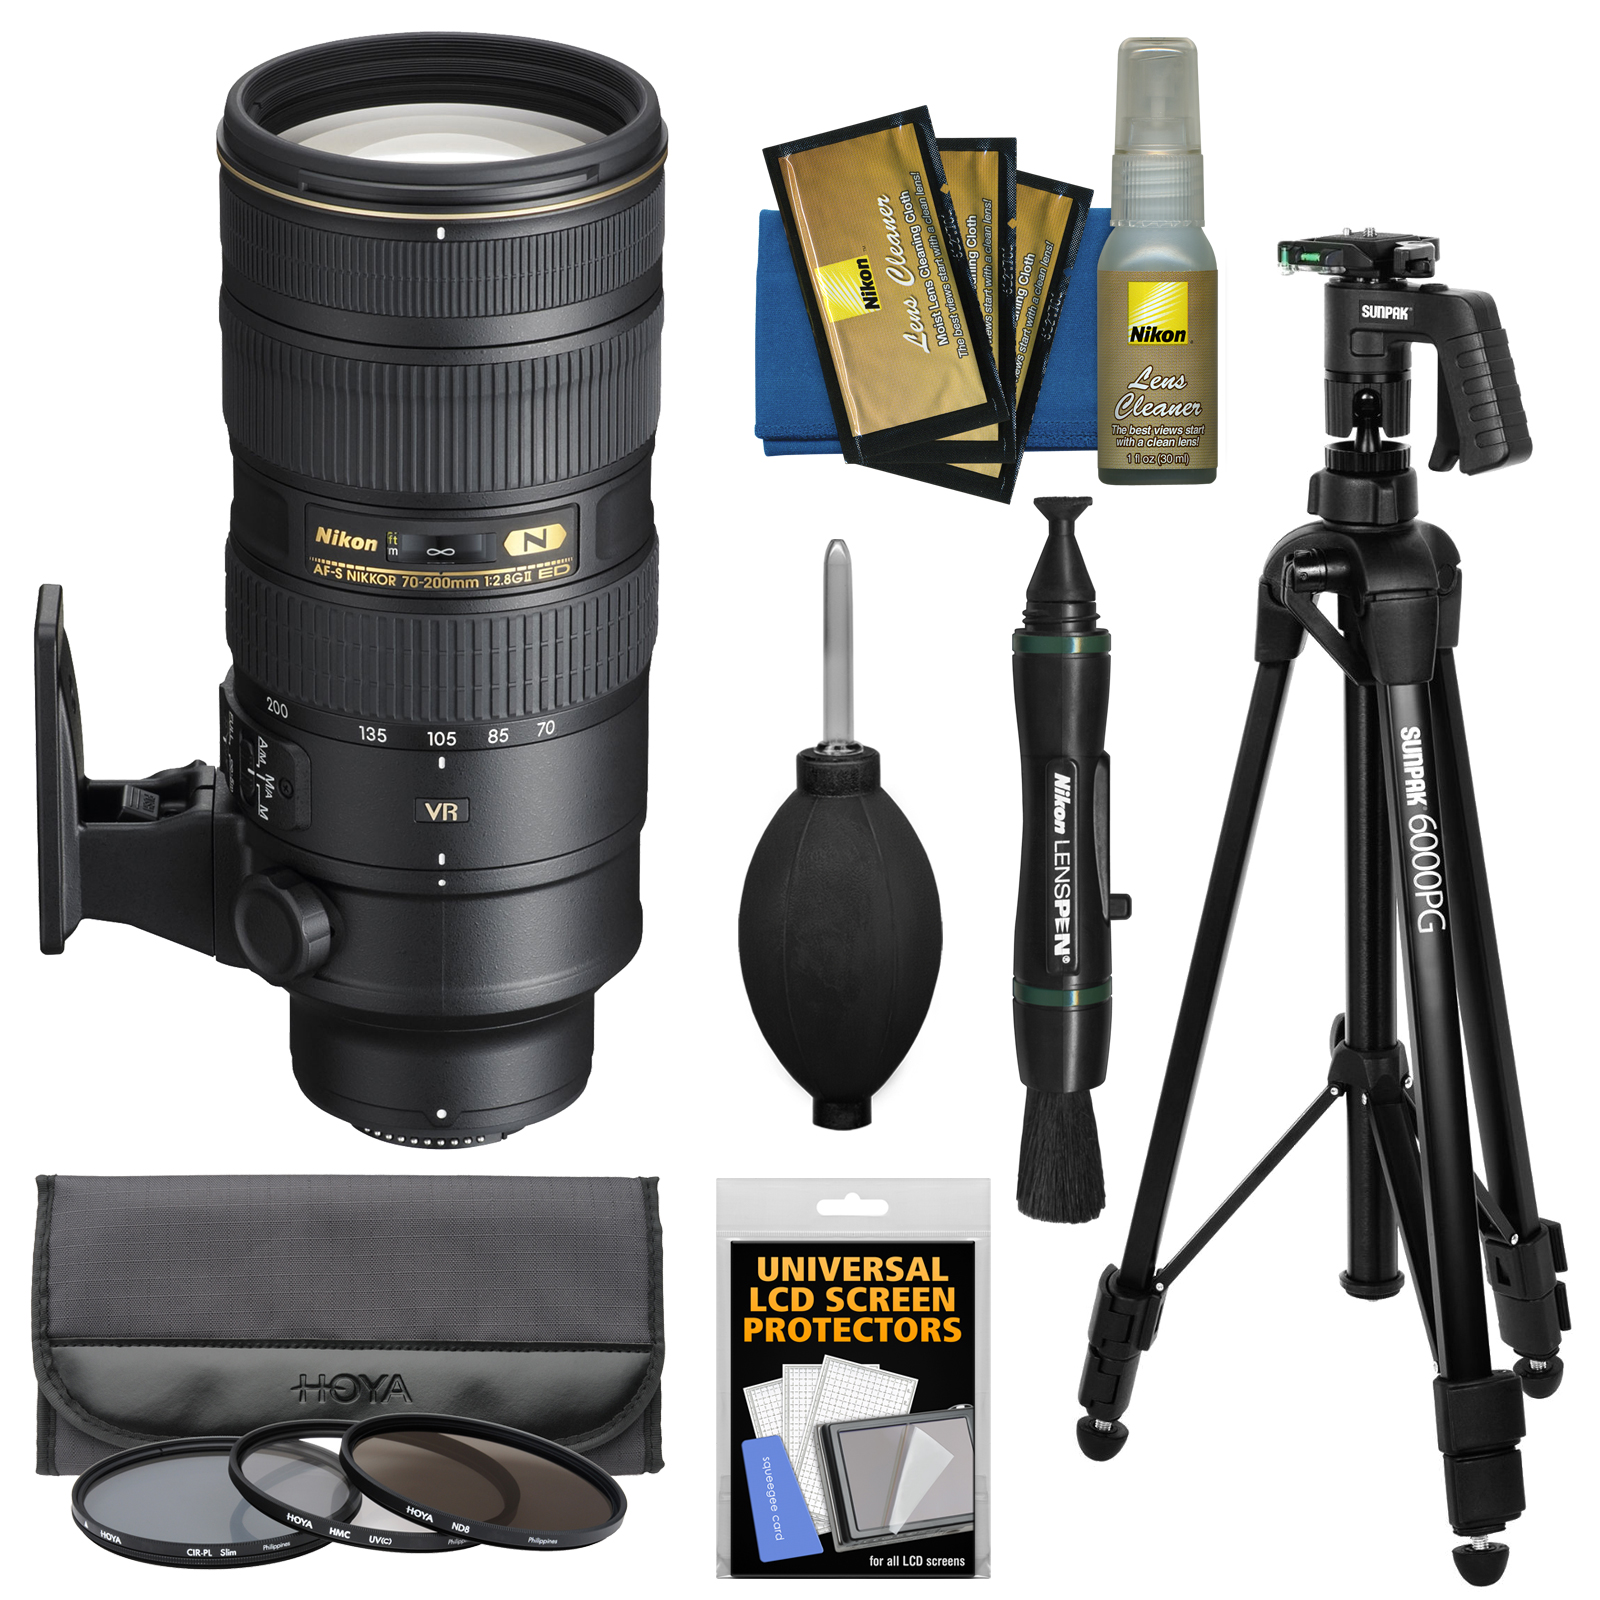 Nikon 70-200mm f/2.8G VR II AF-S ED-IF Zoom-Nikkor Lens + Hoya 3 Filters + Tripod Kit for D3200, D3300, D5300, D5500, D7100, D7200, D750, D810 Cameras